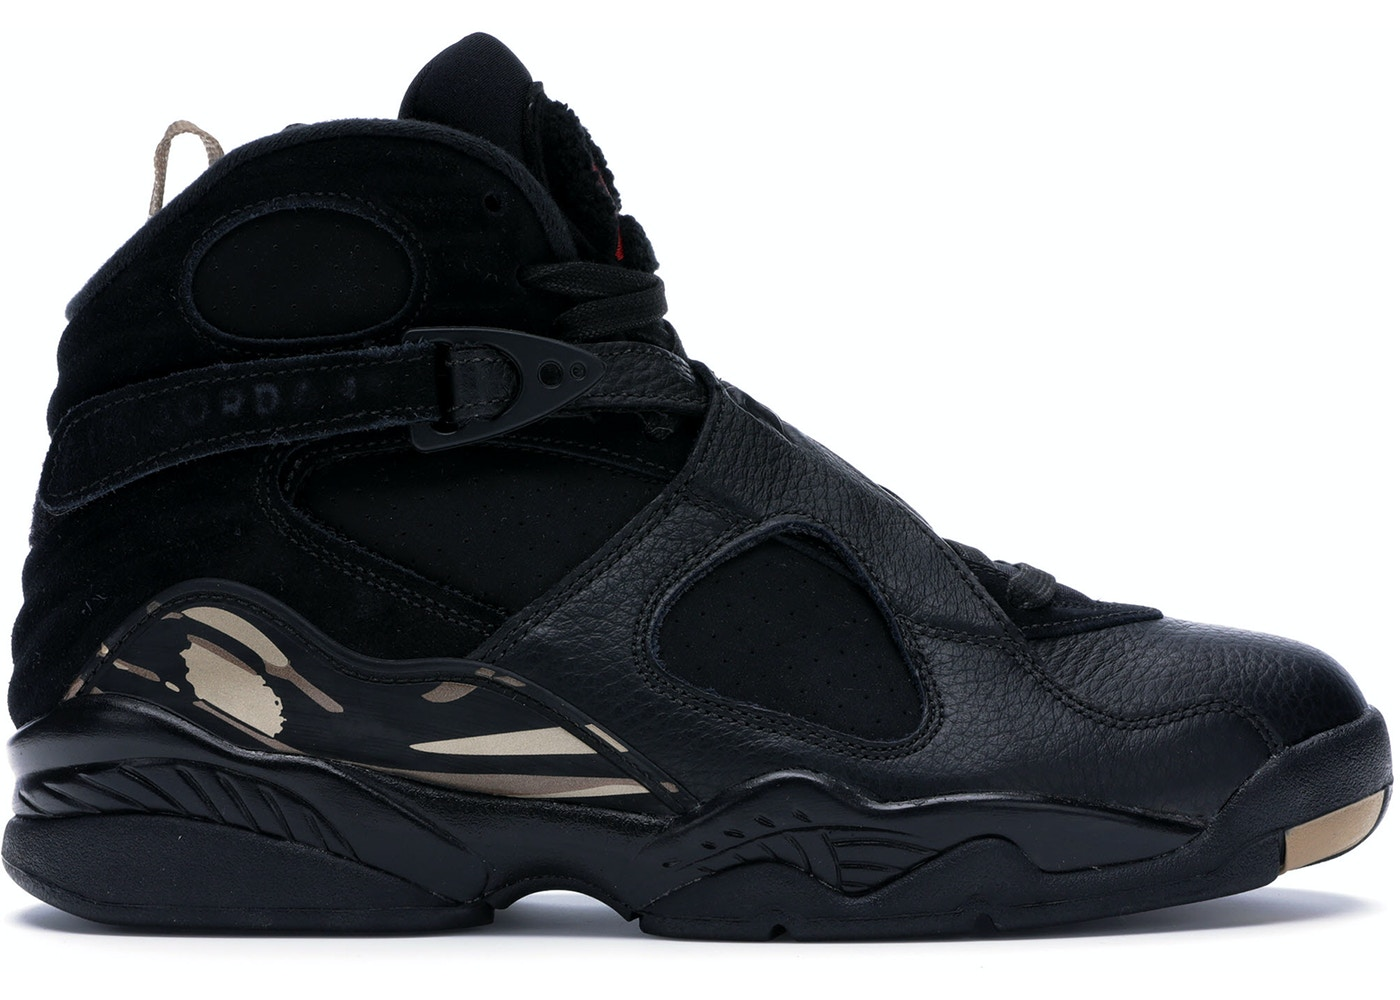 los angeles 407f1 0778c Buy Air Jordan 8 Shoes & Deadstock Sneakers